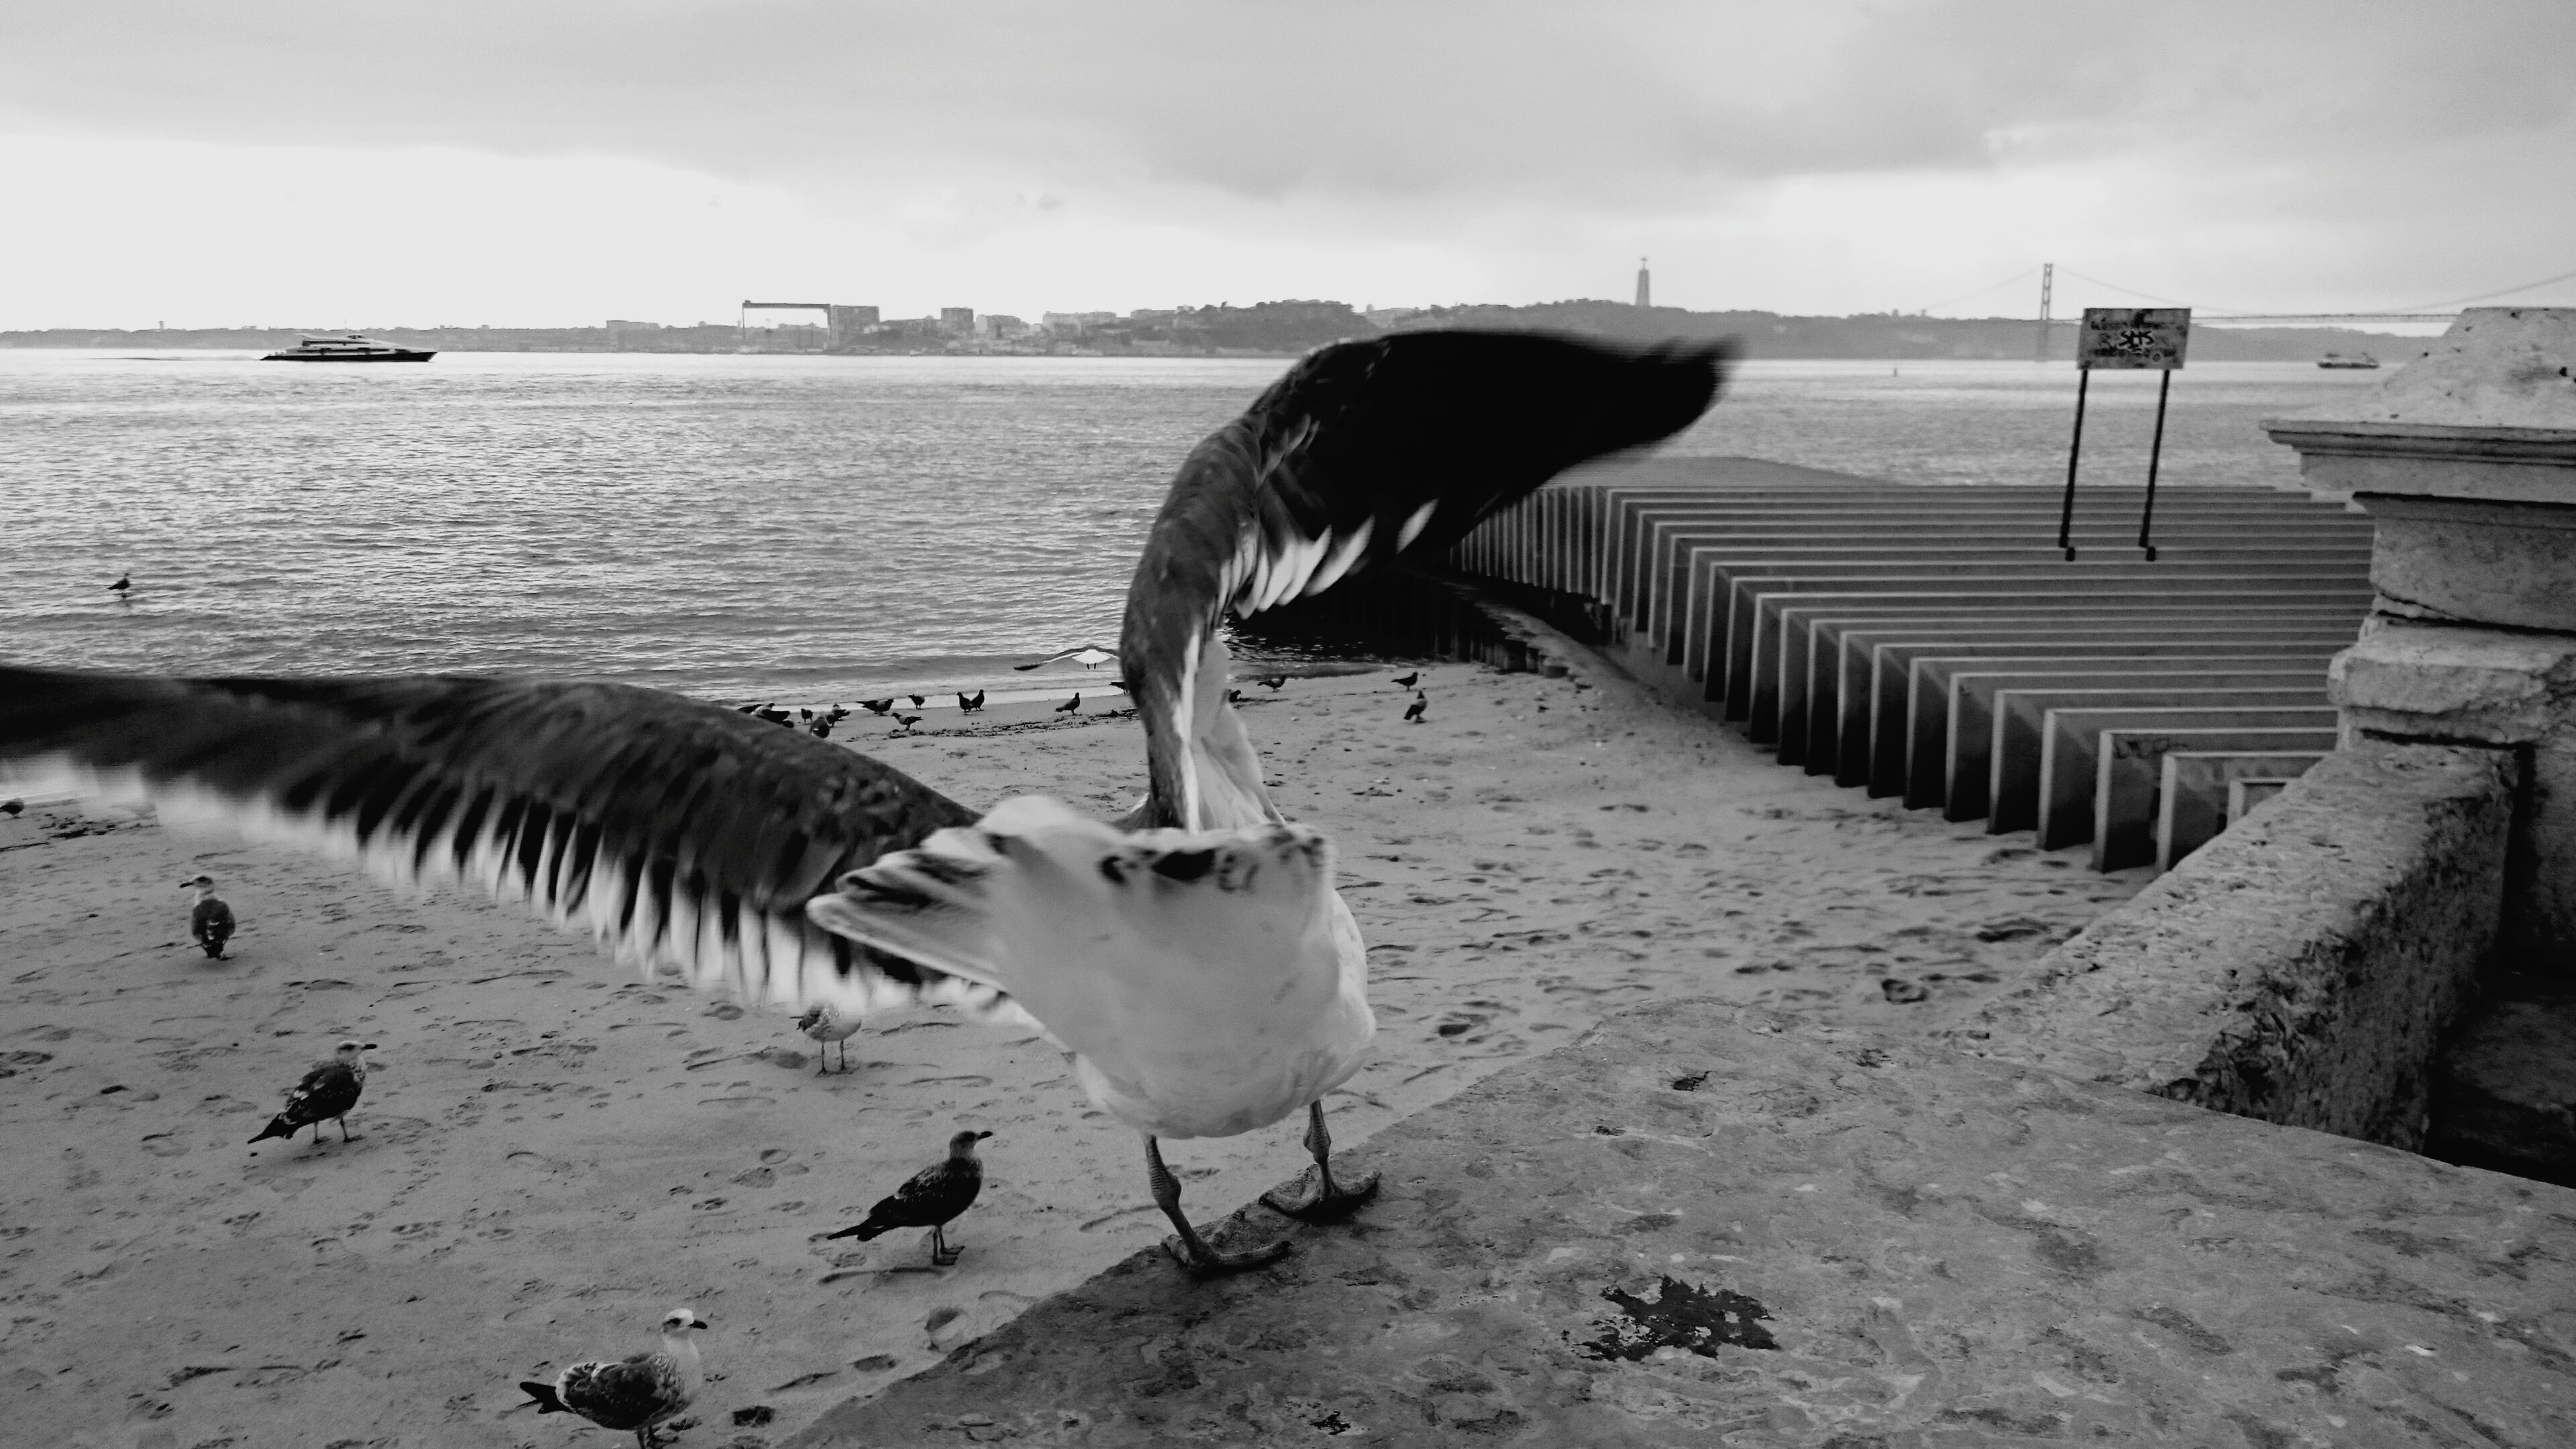 bird, animal themes, animals in the wild, water, wildlife, seagull, sea, flying, spread wings, sky, one animal, nature, sea bird, beauty in nature, beach, perching, lake, shore, outdoors, no people